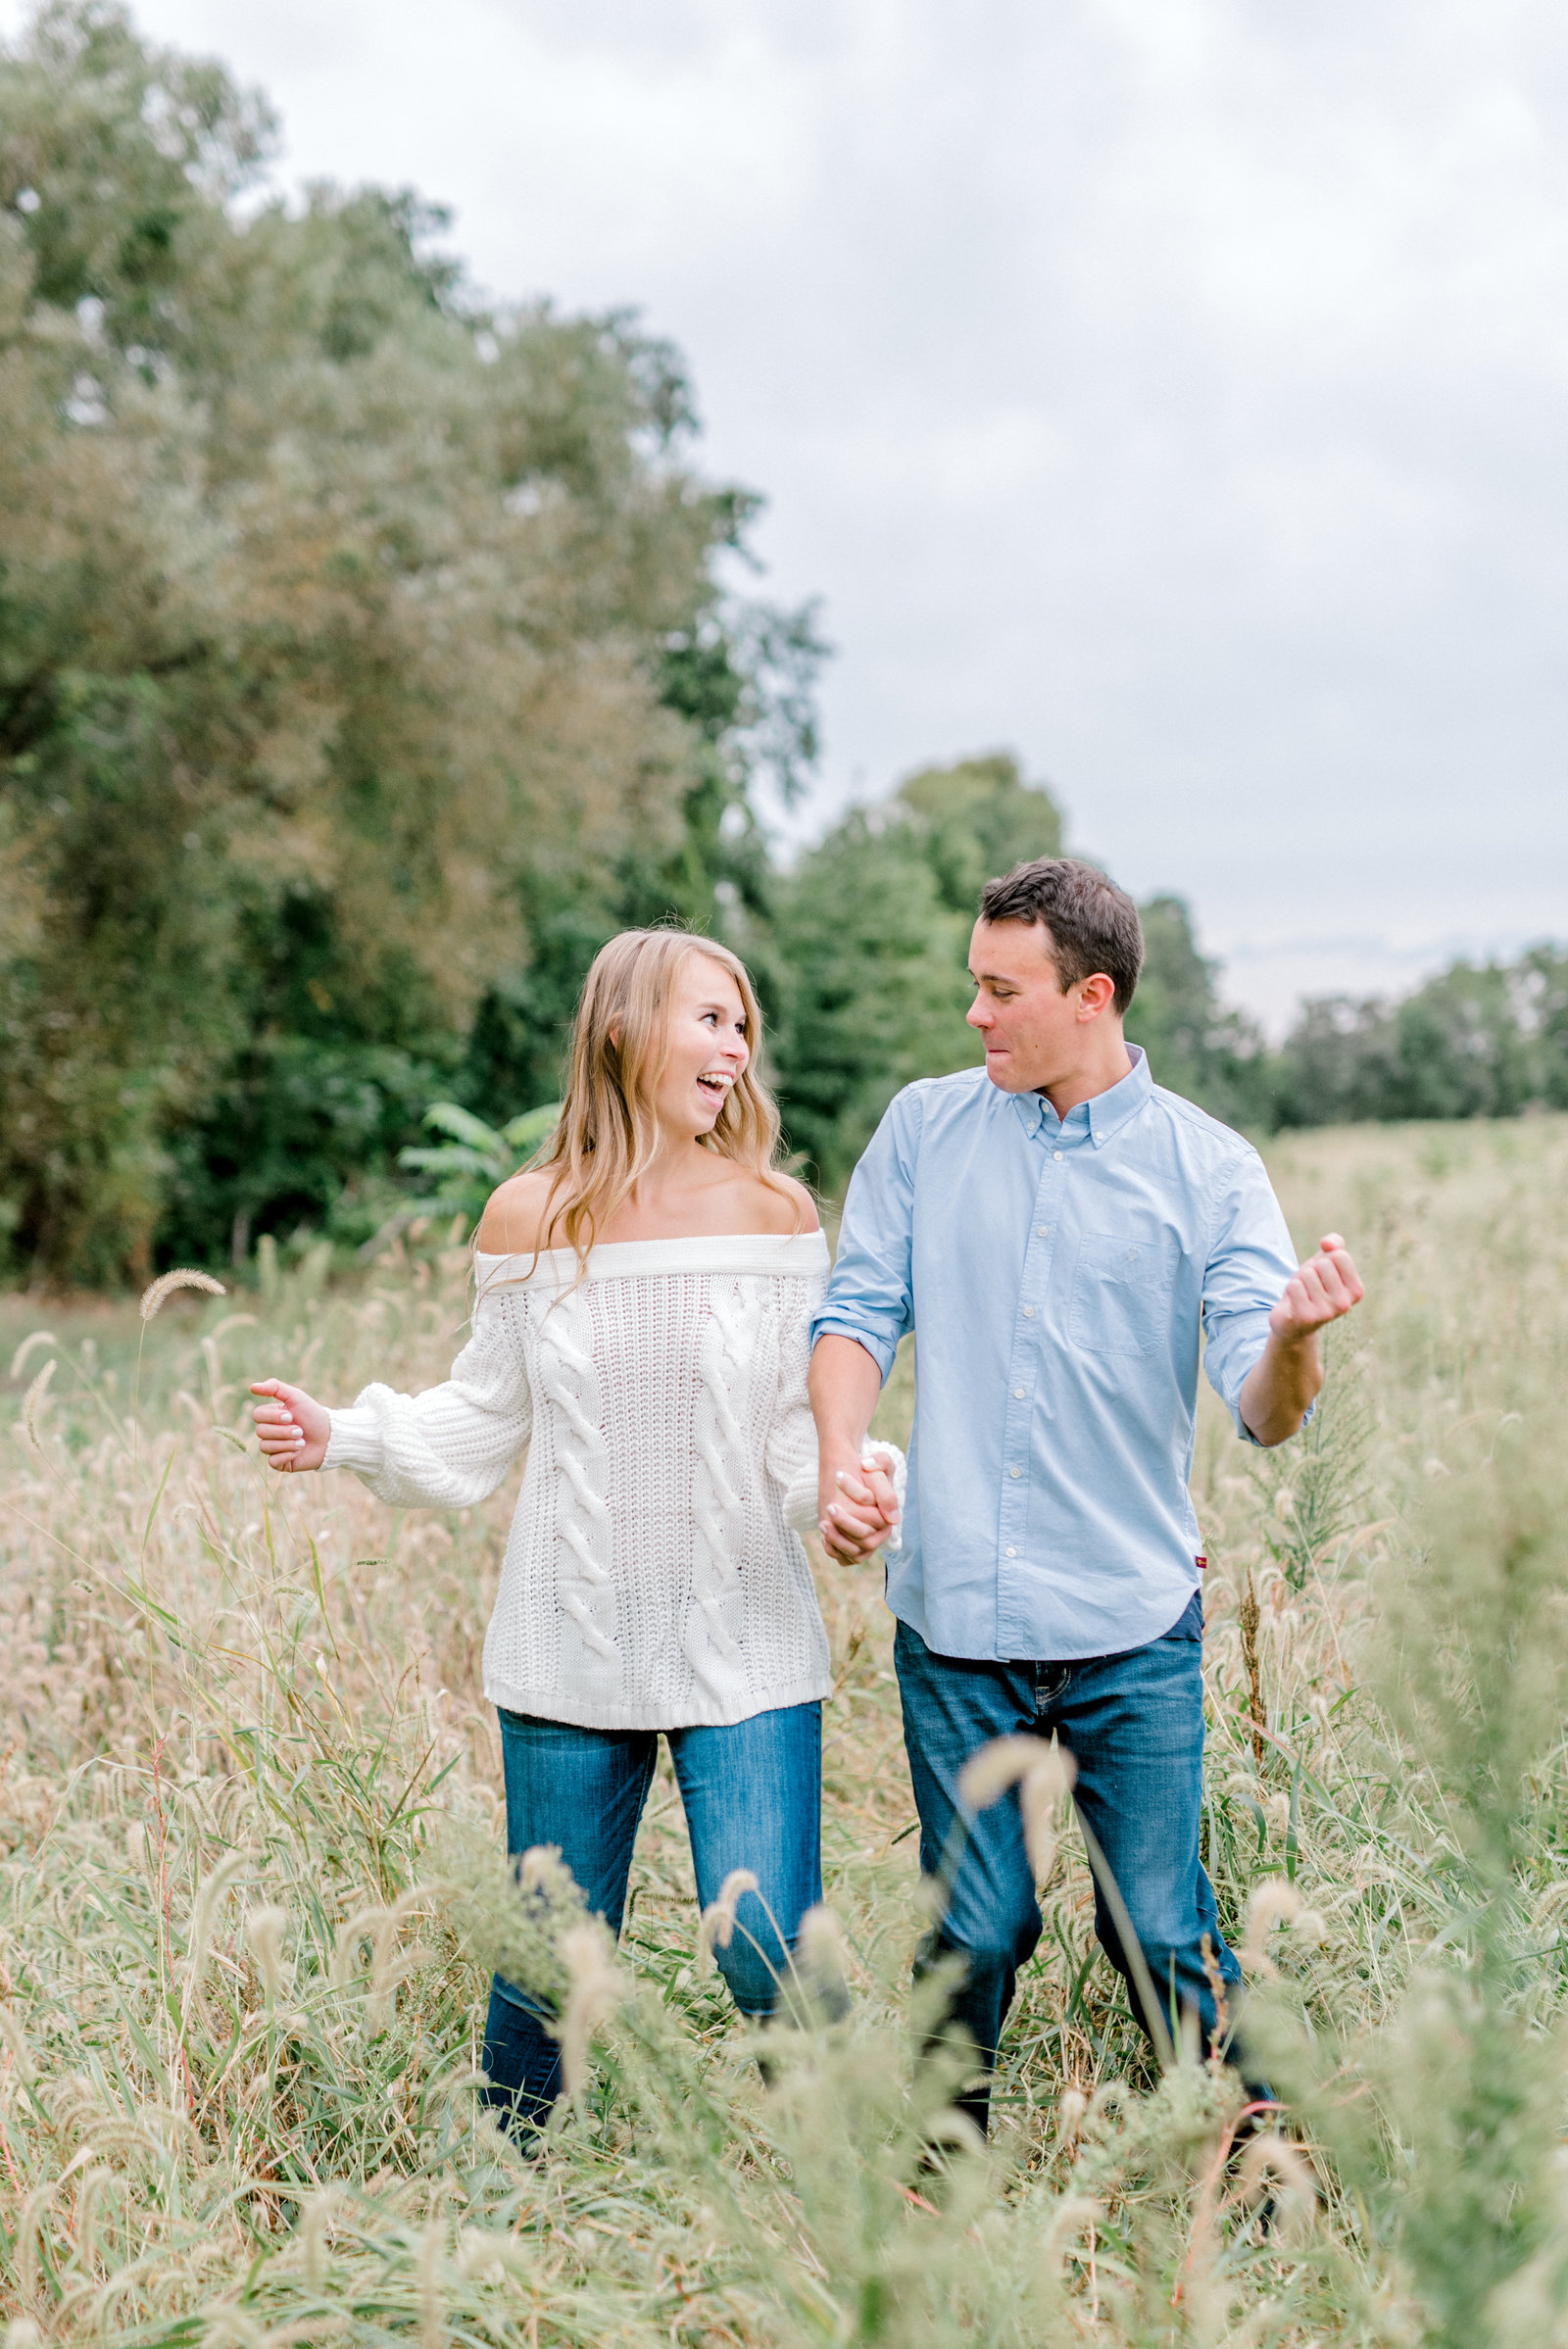 Quincy Cellars Engagement Session